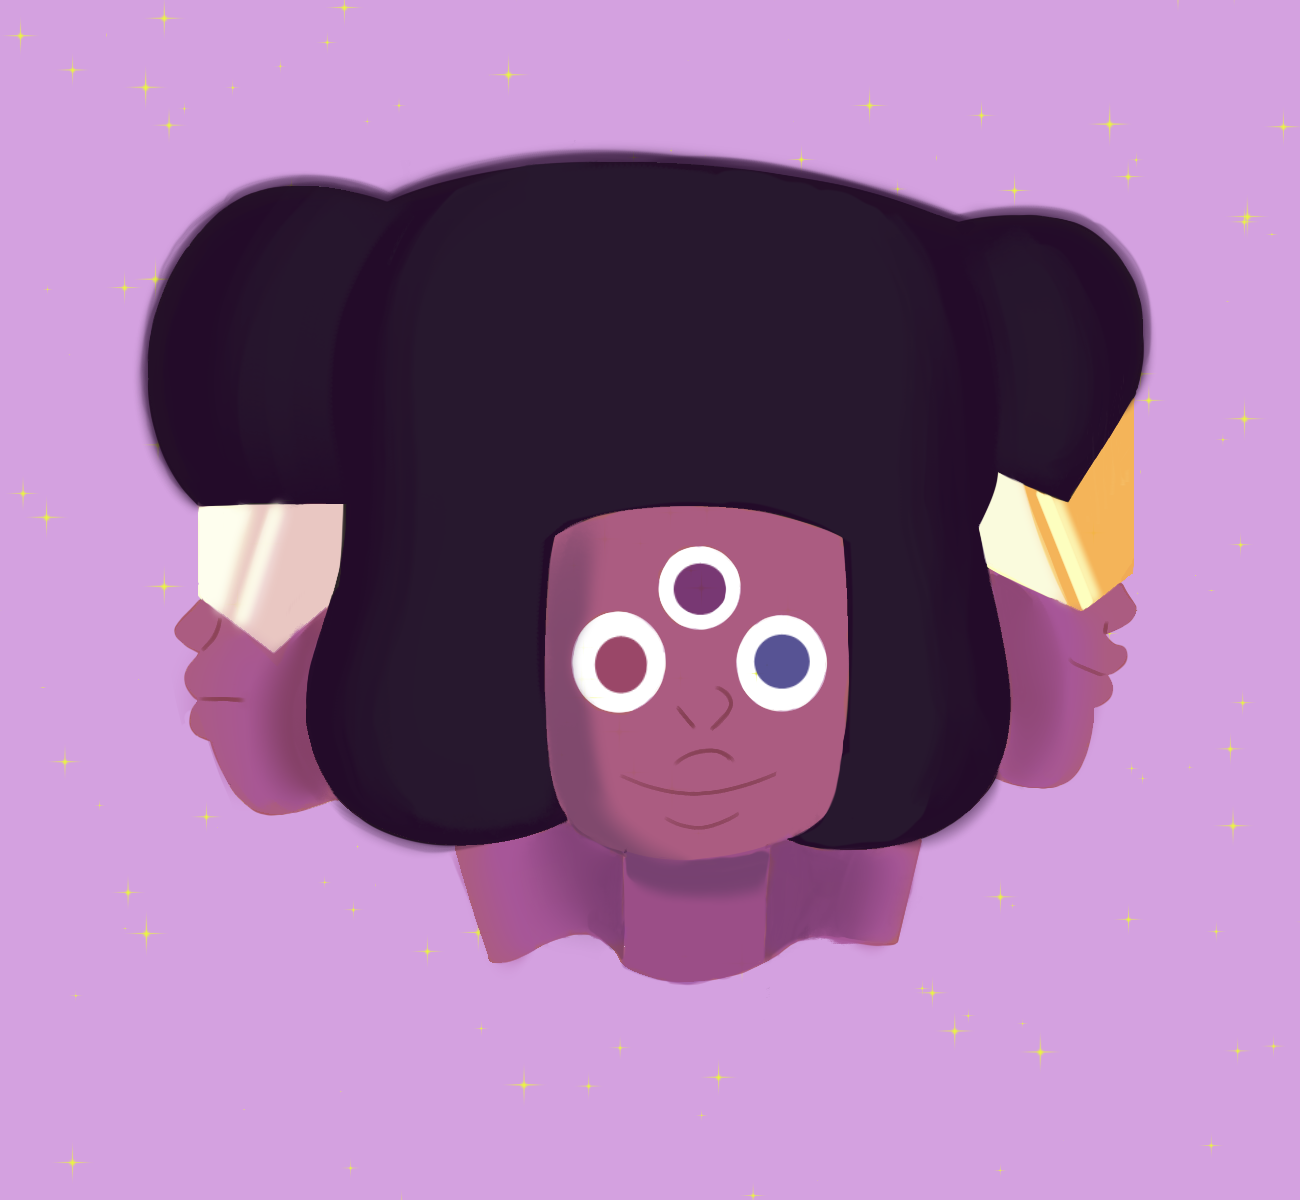 Garnet Then, Now and The Future